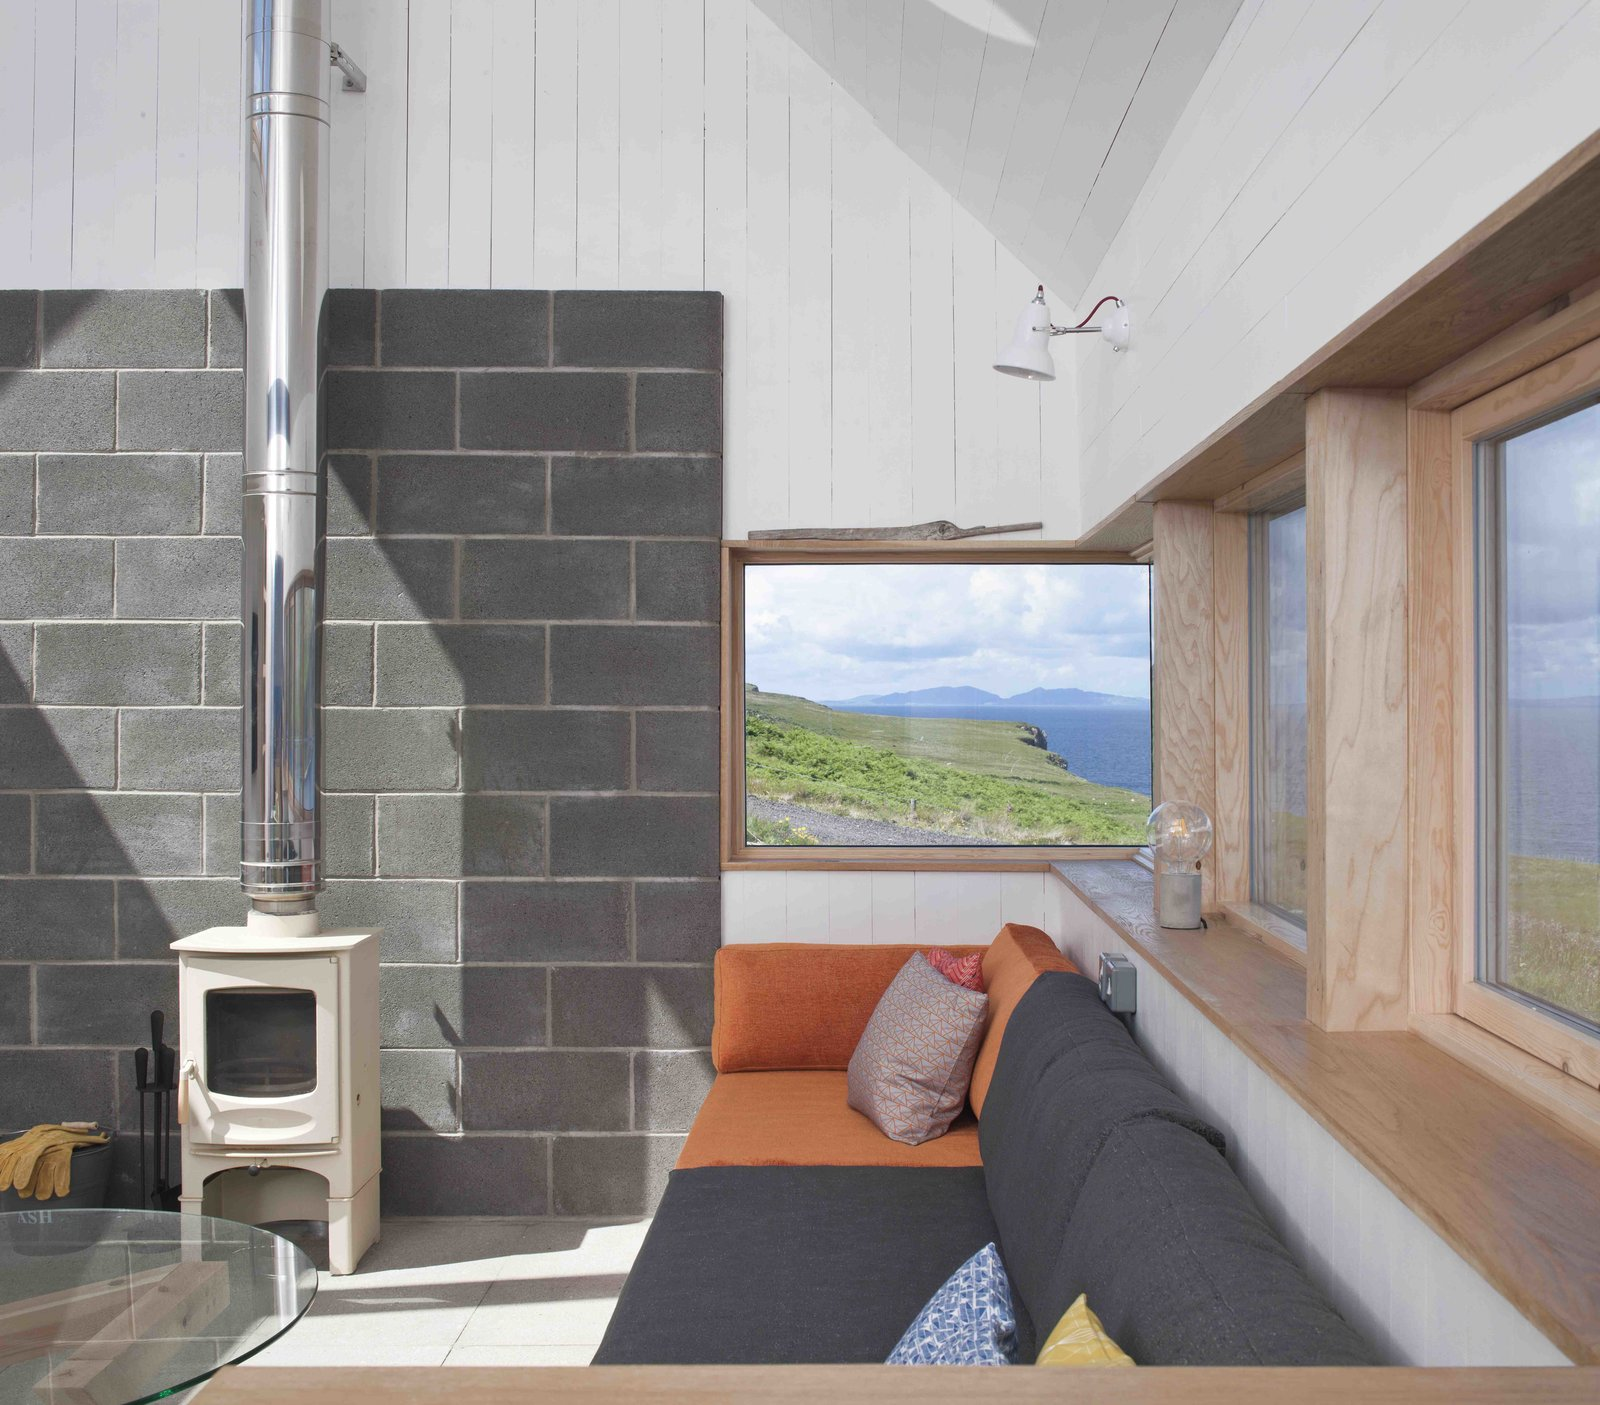 Living Room, Coffee Tables, Wall Lighting, Sofa, Wood Burning Fireplace, and Concrete Floor  Photo 9 of 11 in Stay in a Modern Tin Cottage on Scotland's Isle of Skye